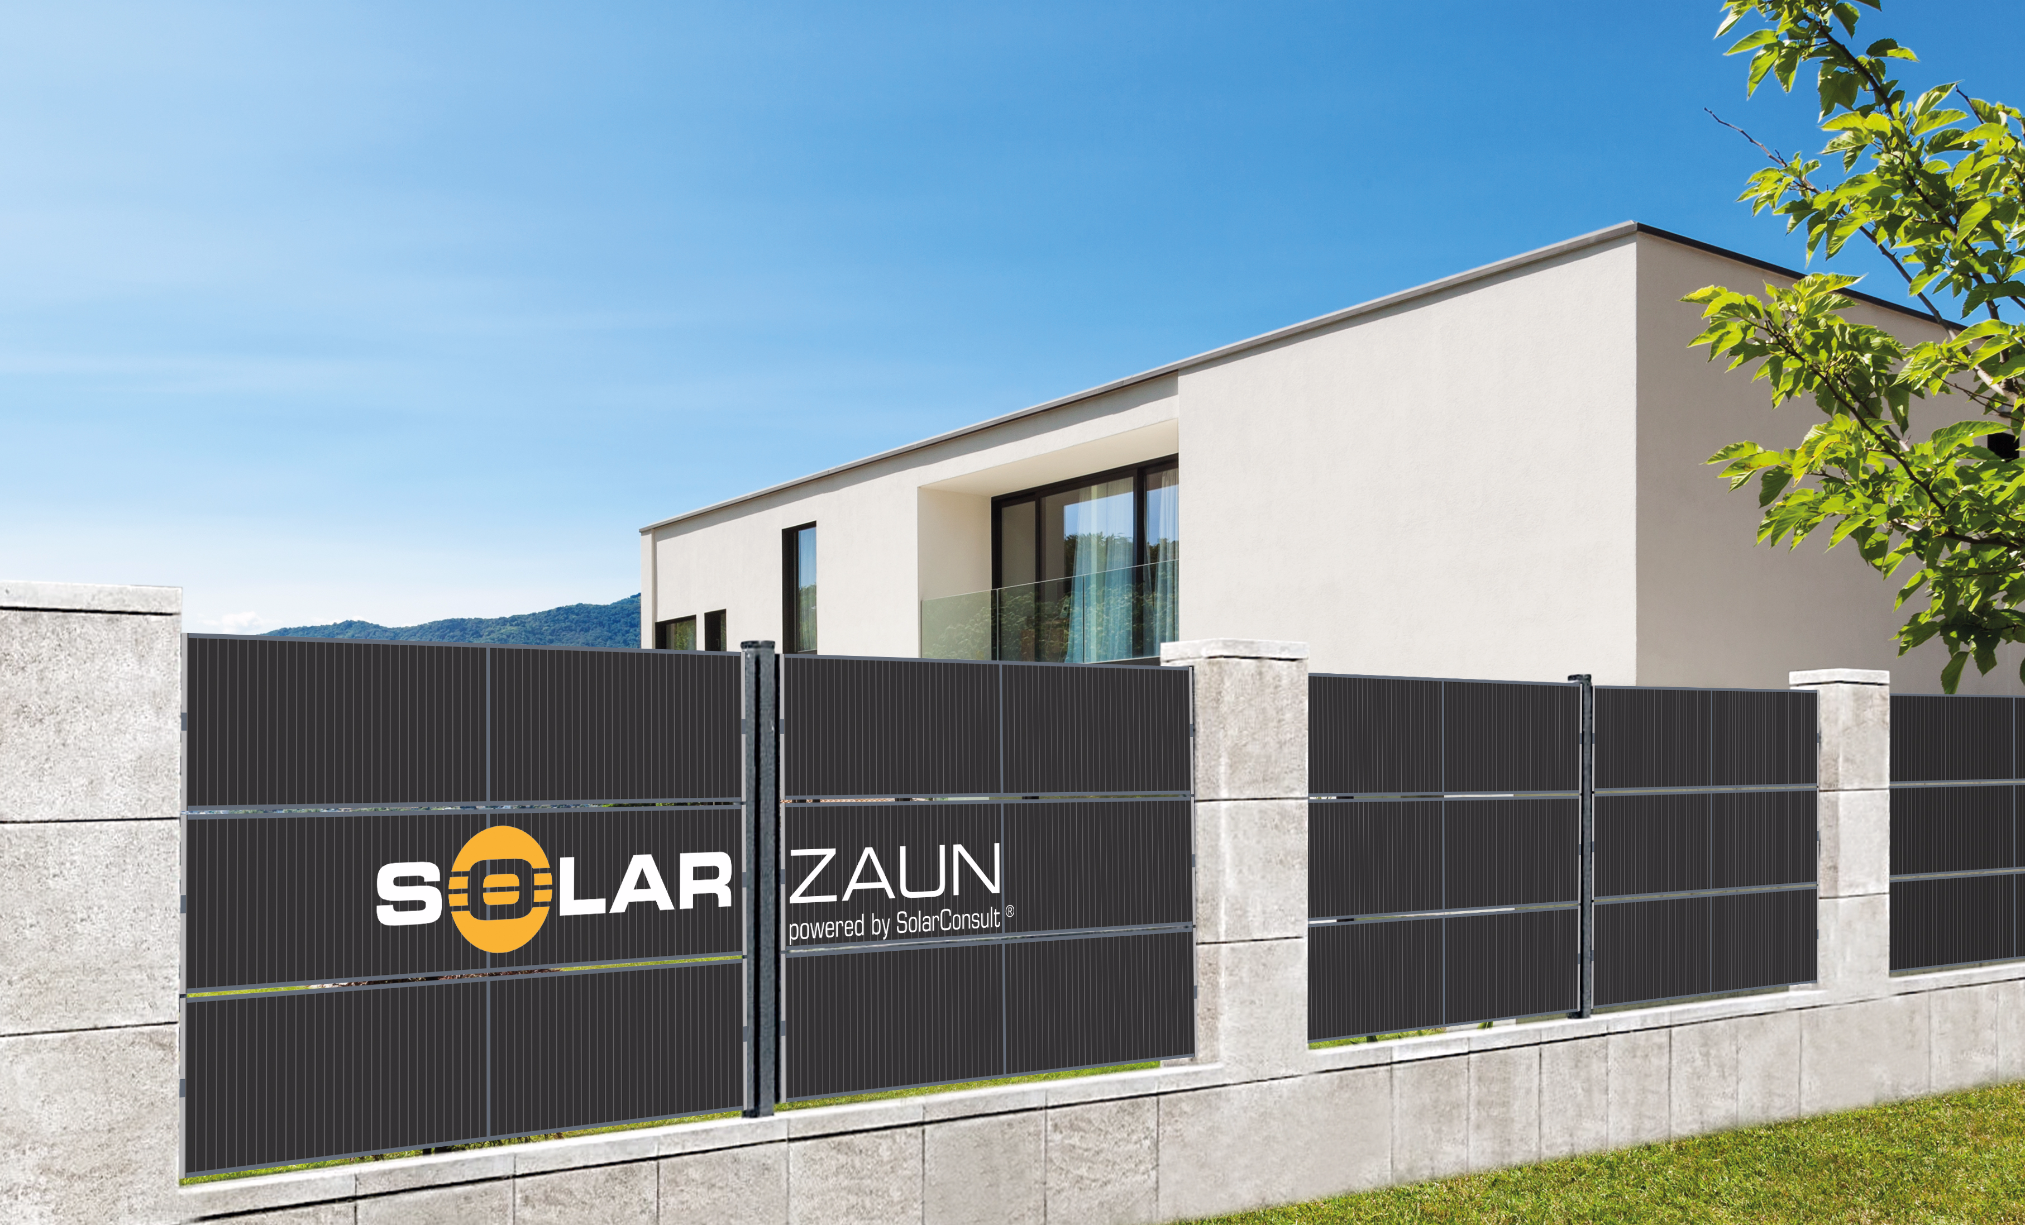 Solarzaun, solarconsult. solar zaun, pv-alternative, photovoltaik alternative